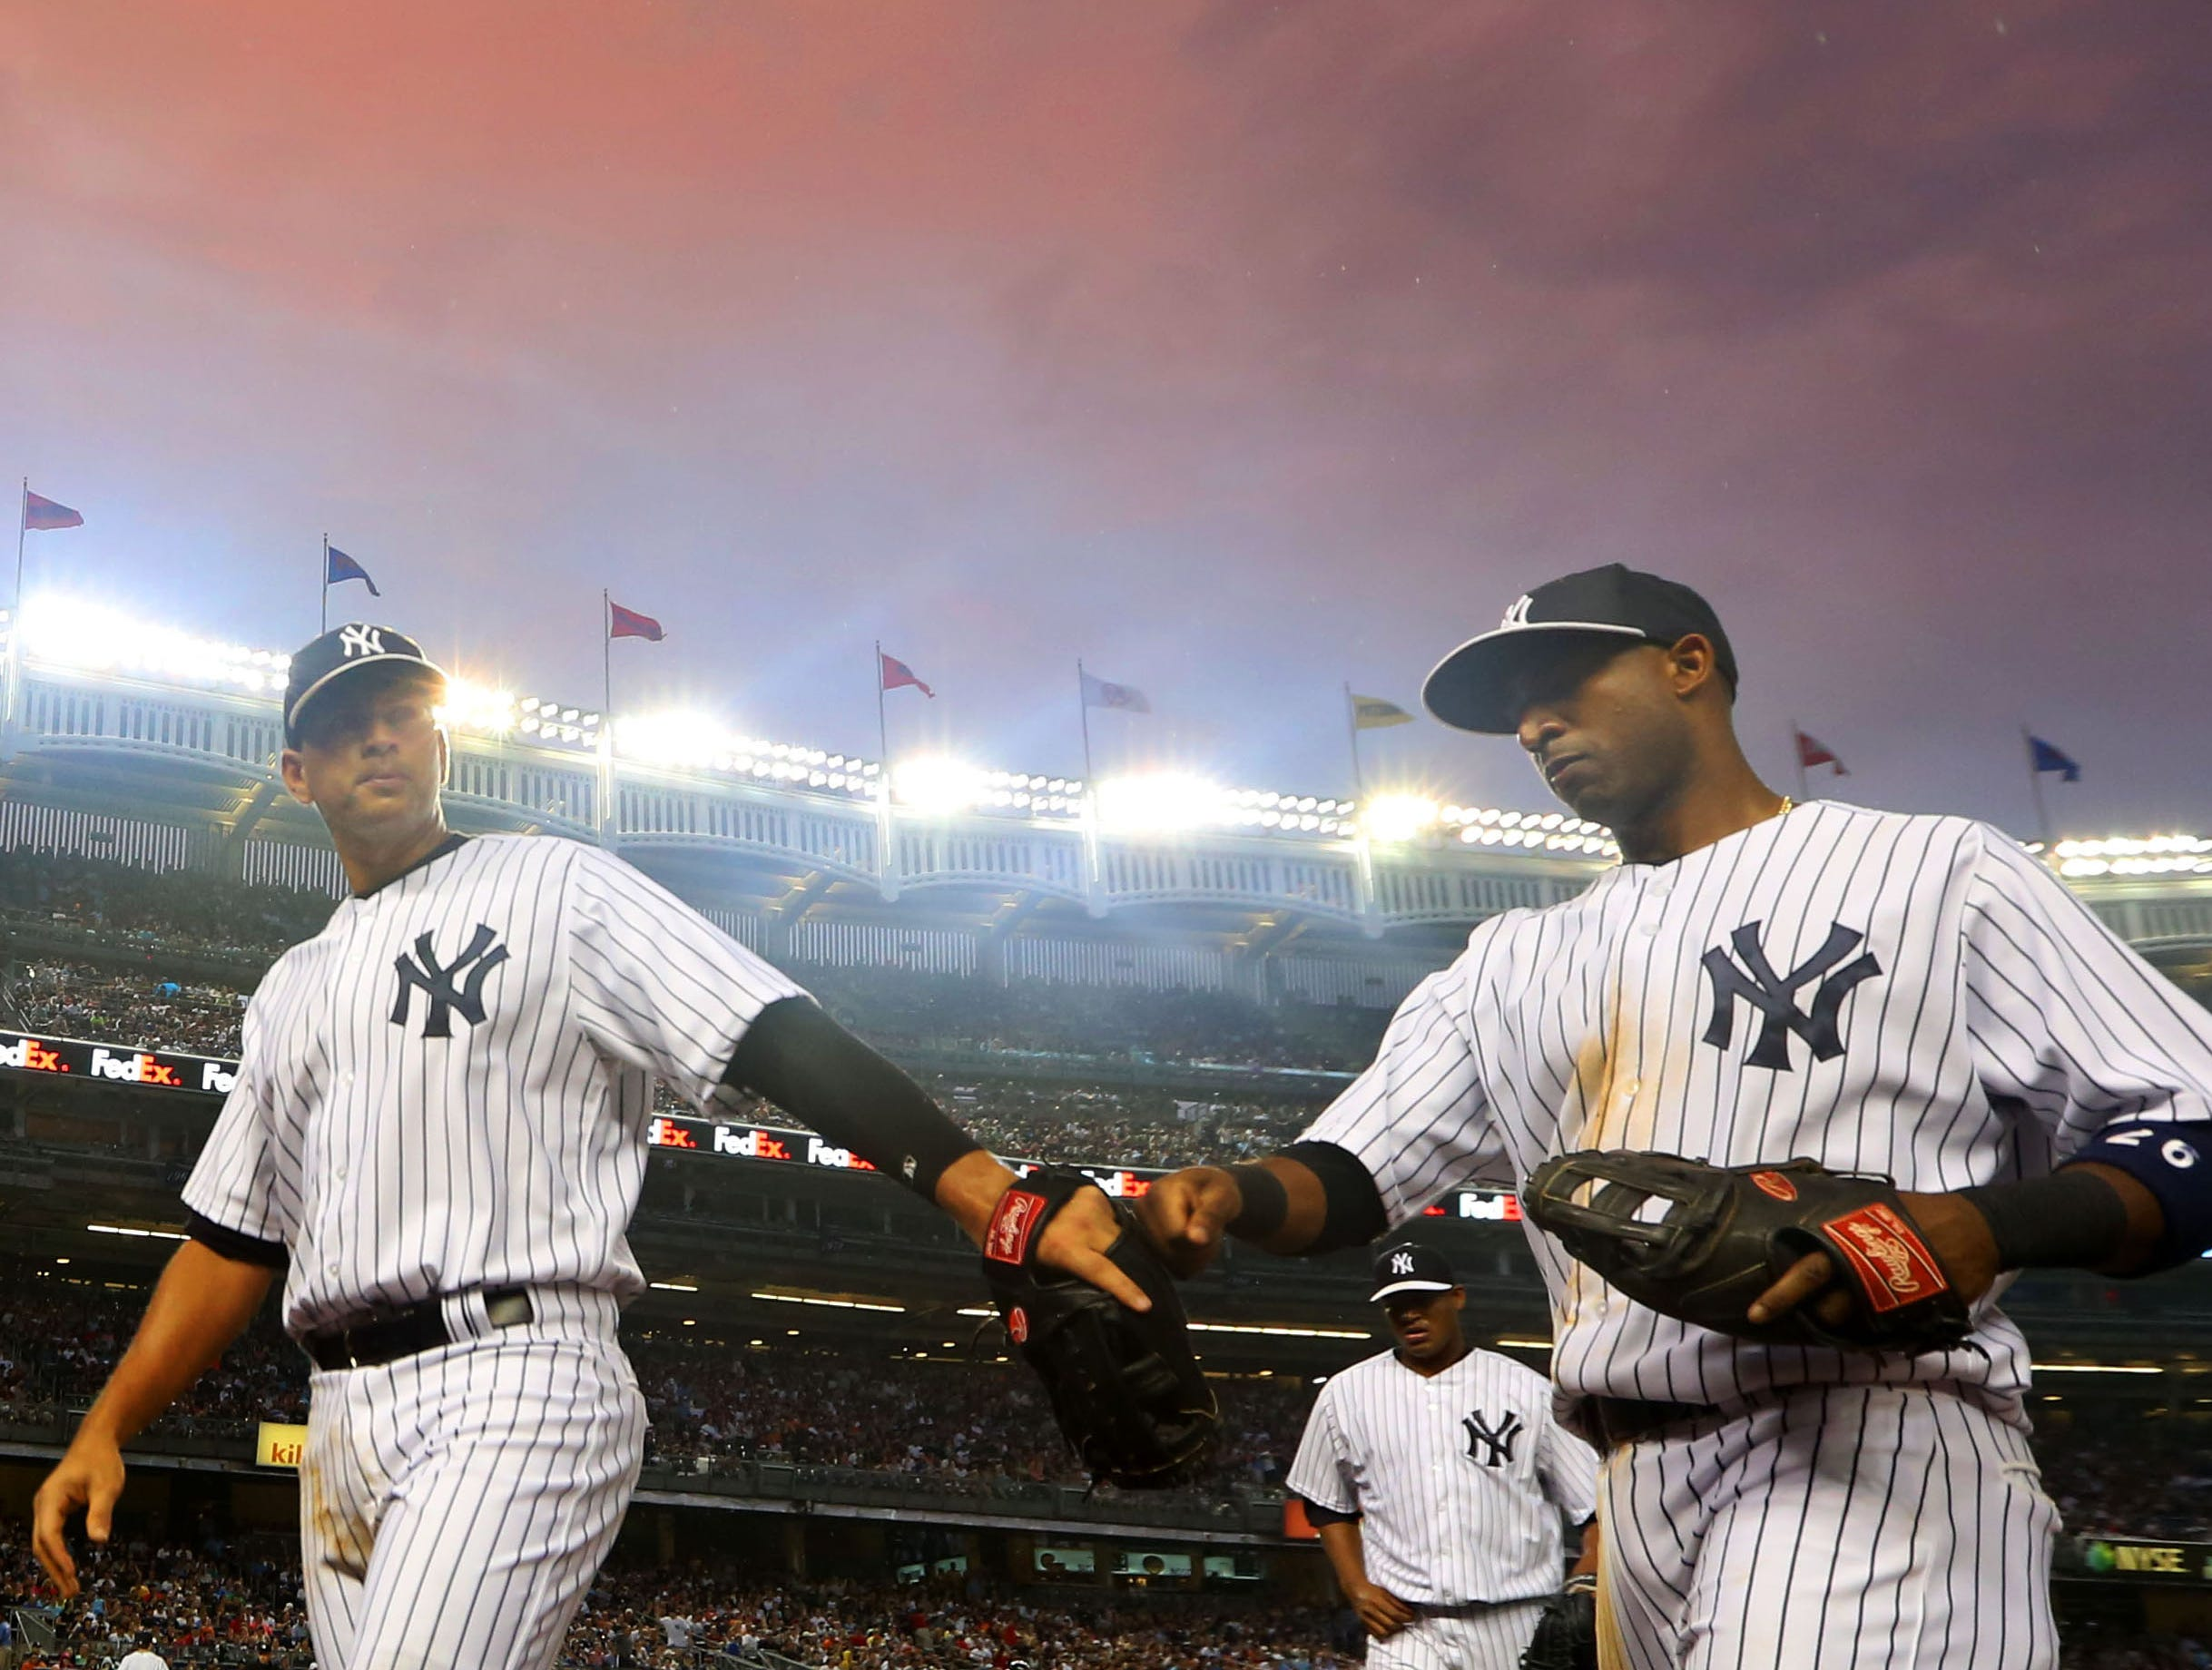 Alex Rodriguez, left, and shortstop Eduardo Nunez walk off the field after the bottom of the  first inning against the Detroit Tigers at Yankee Stadium.